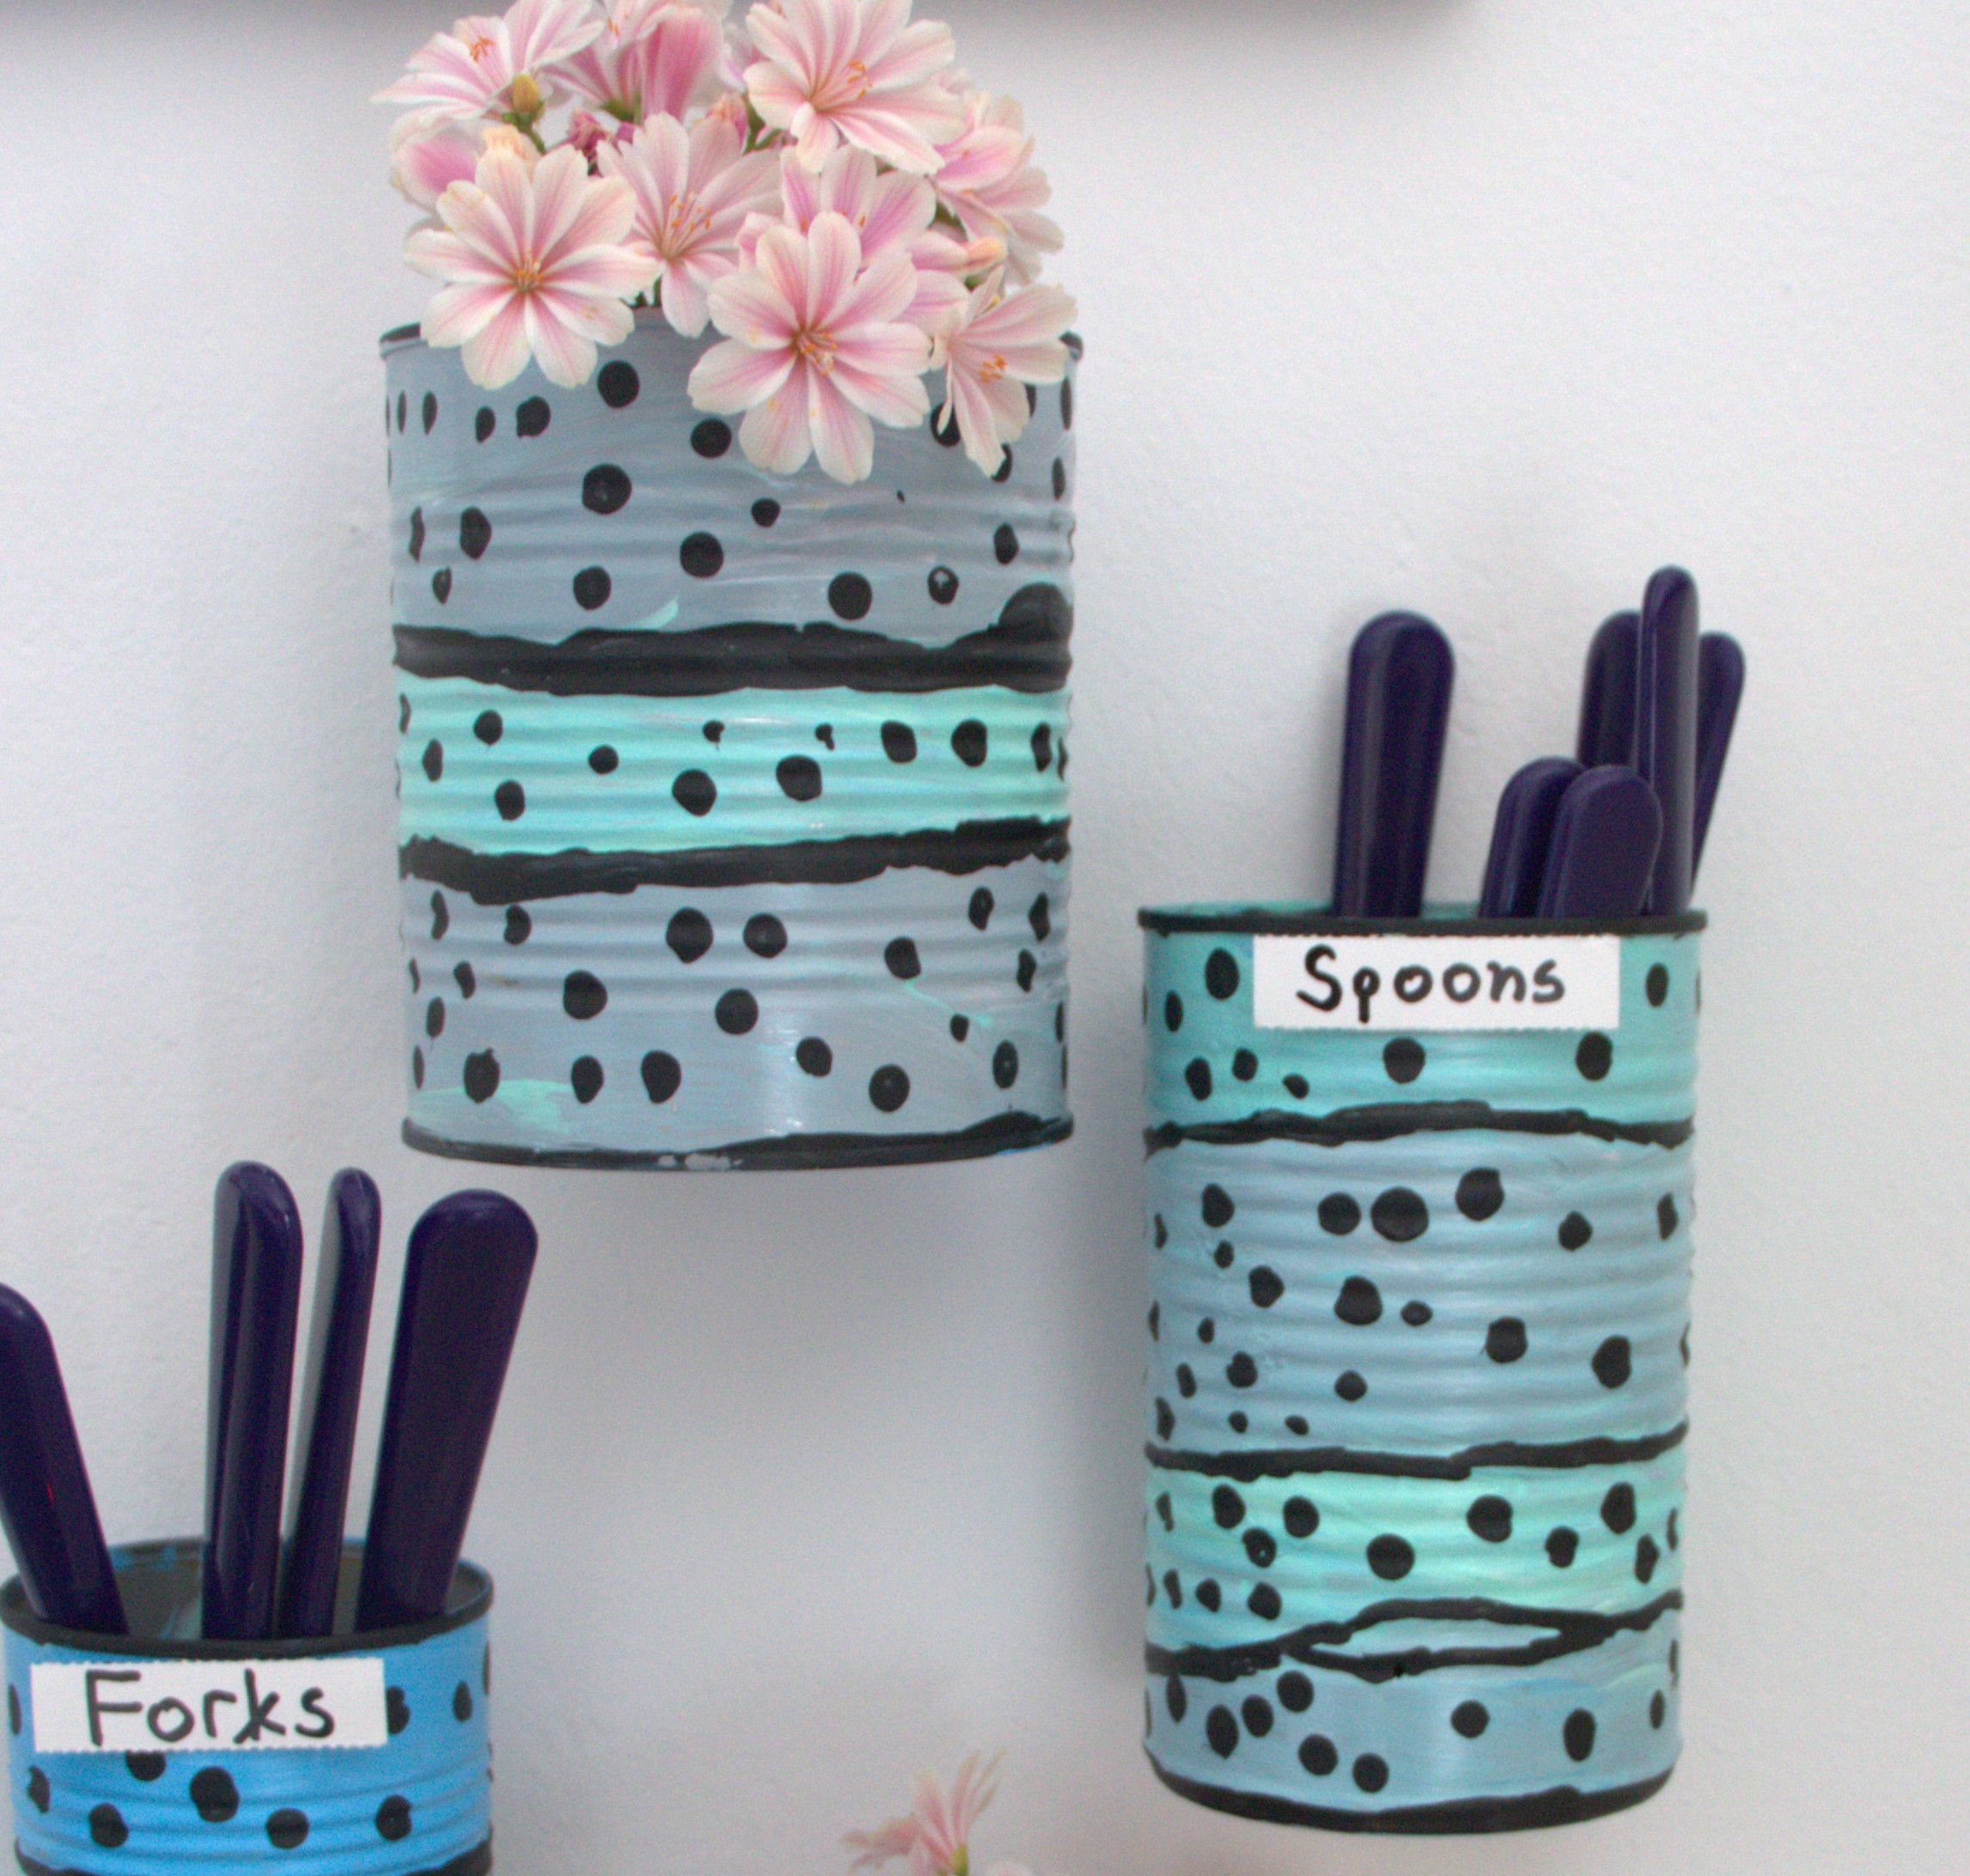 Tin cans for crafts - Tin Cans For Crafts 51